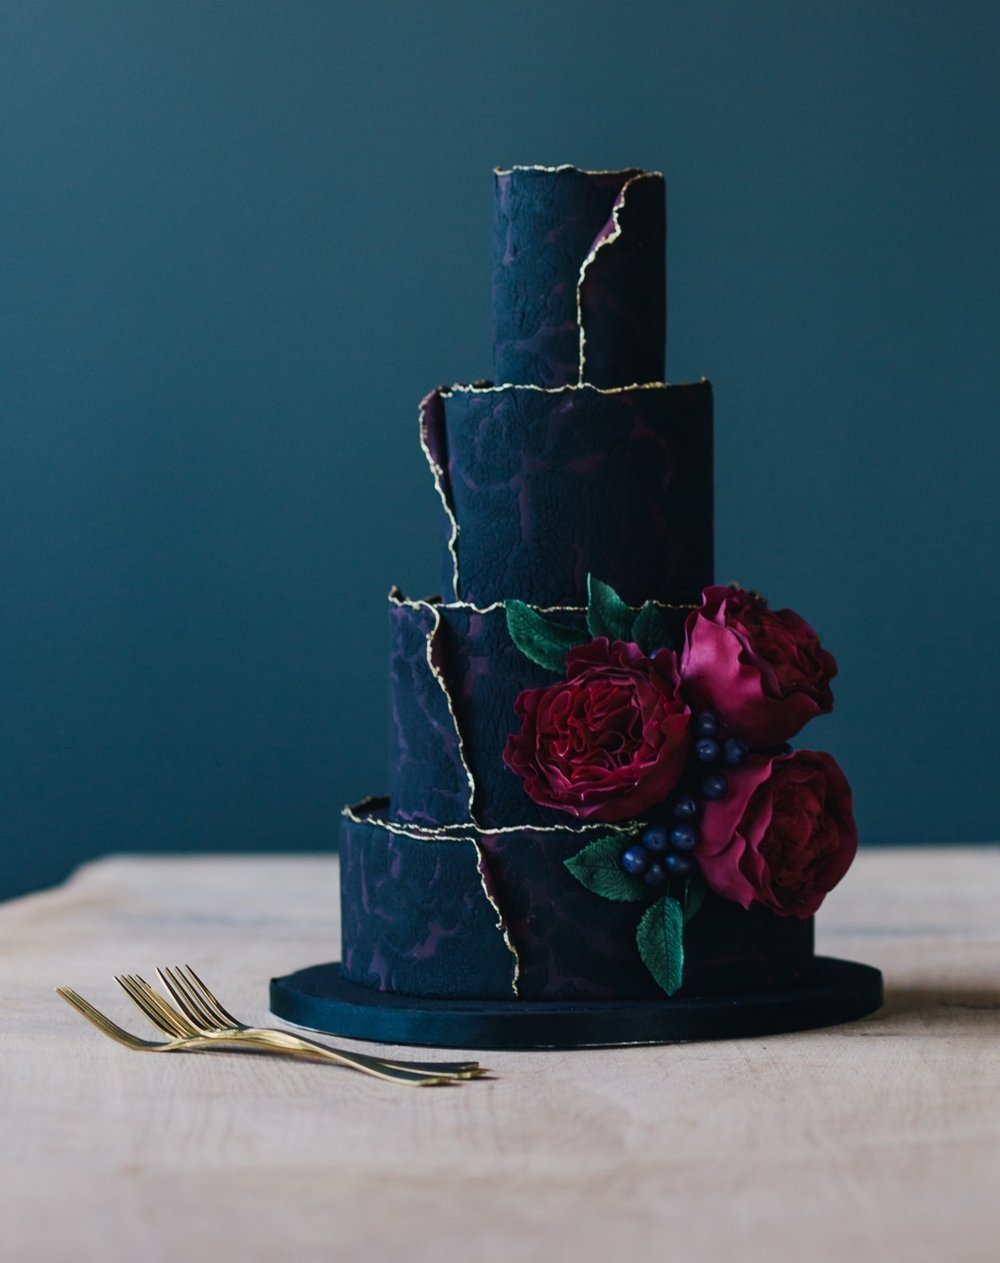 Weddings_In_The_Wyldes_cake.jpeg